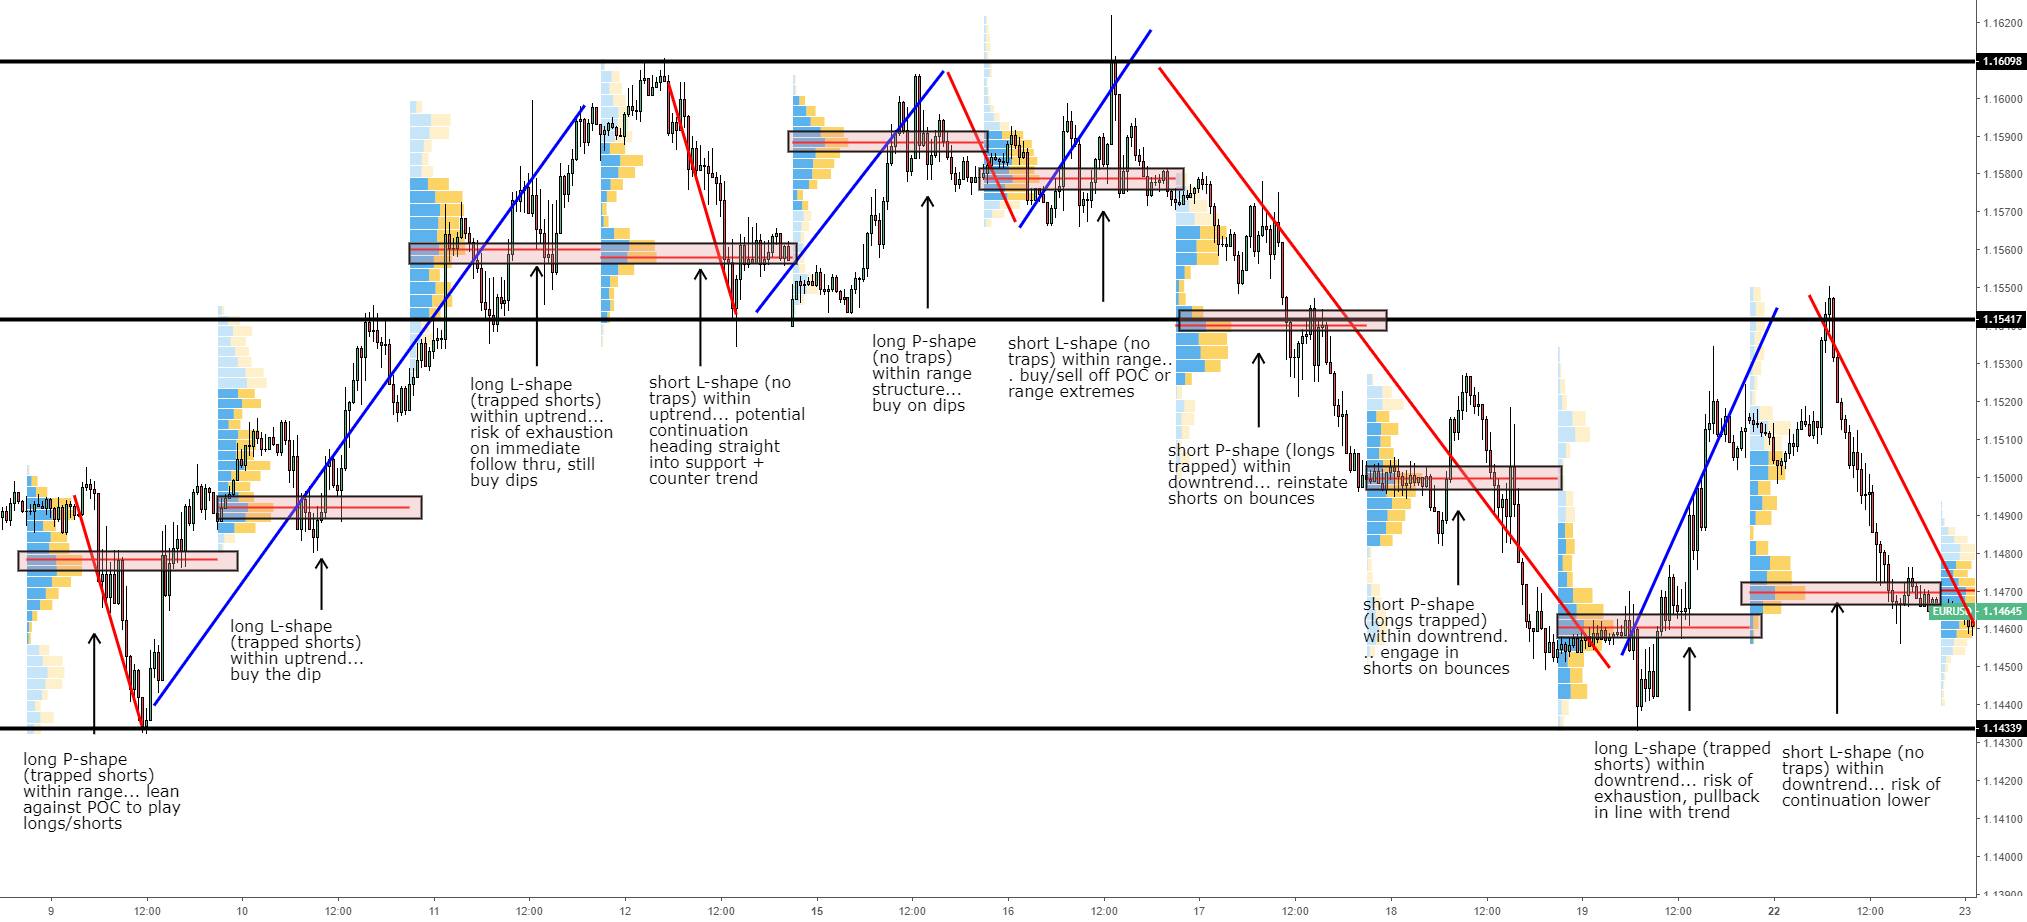 EUR/USD case study: How to interpret volume profile structures